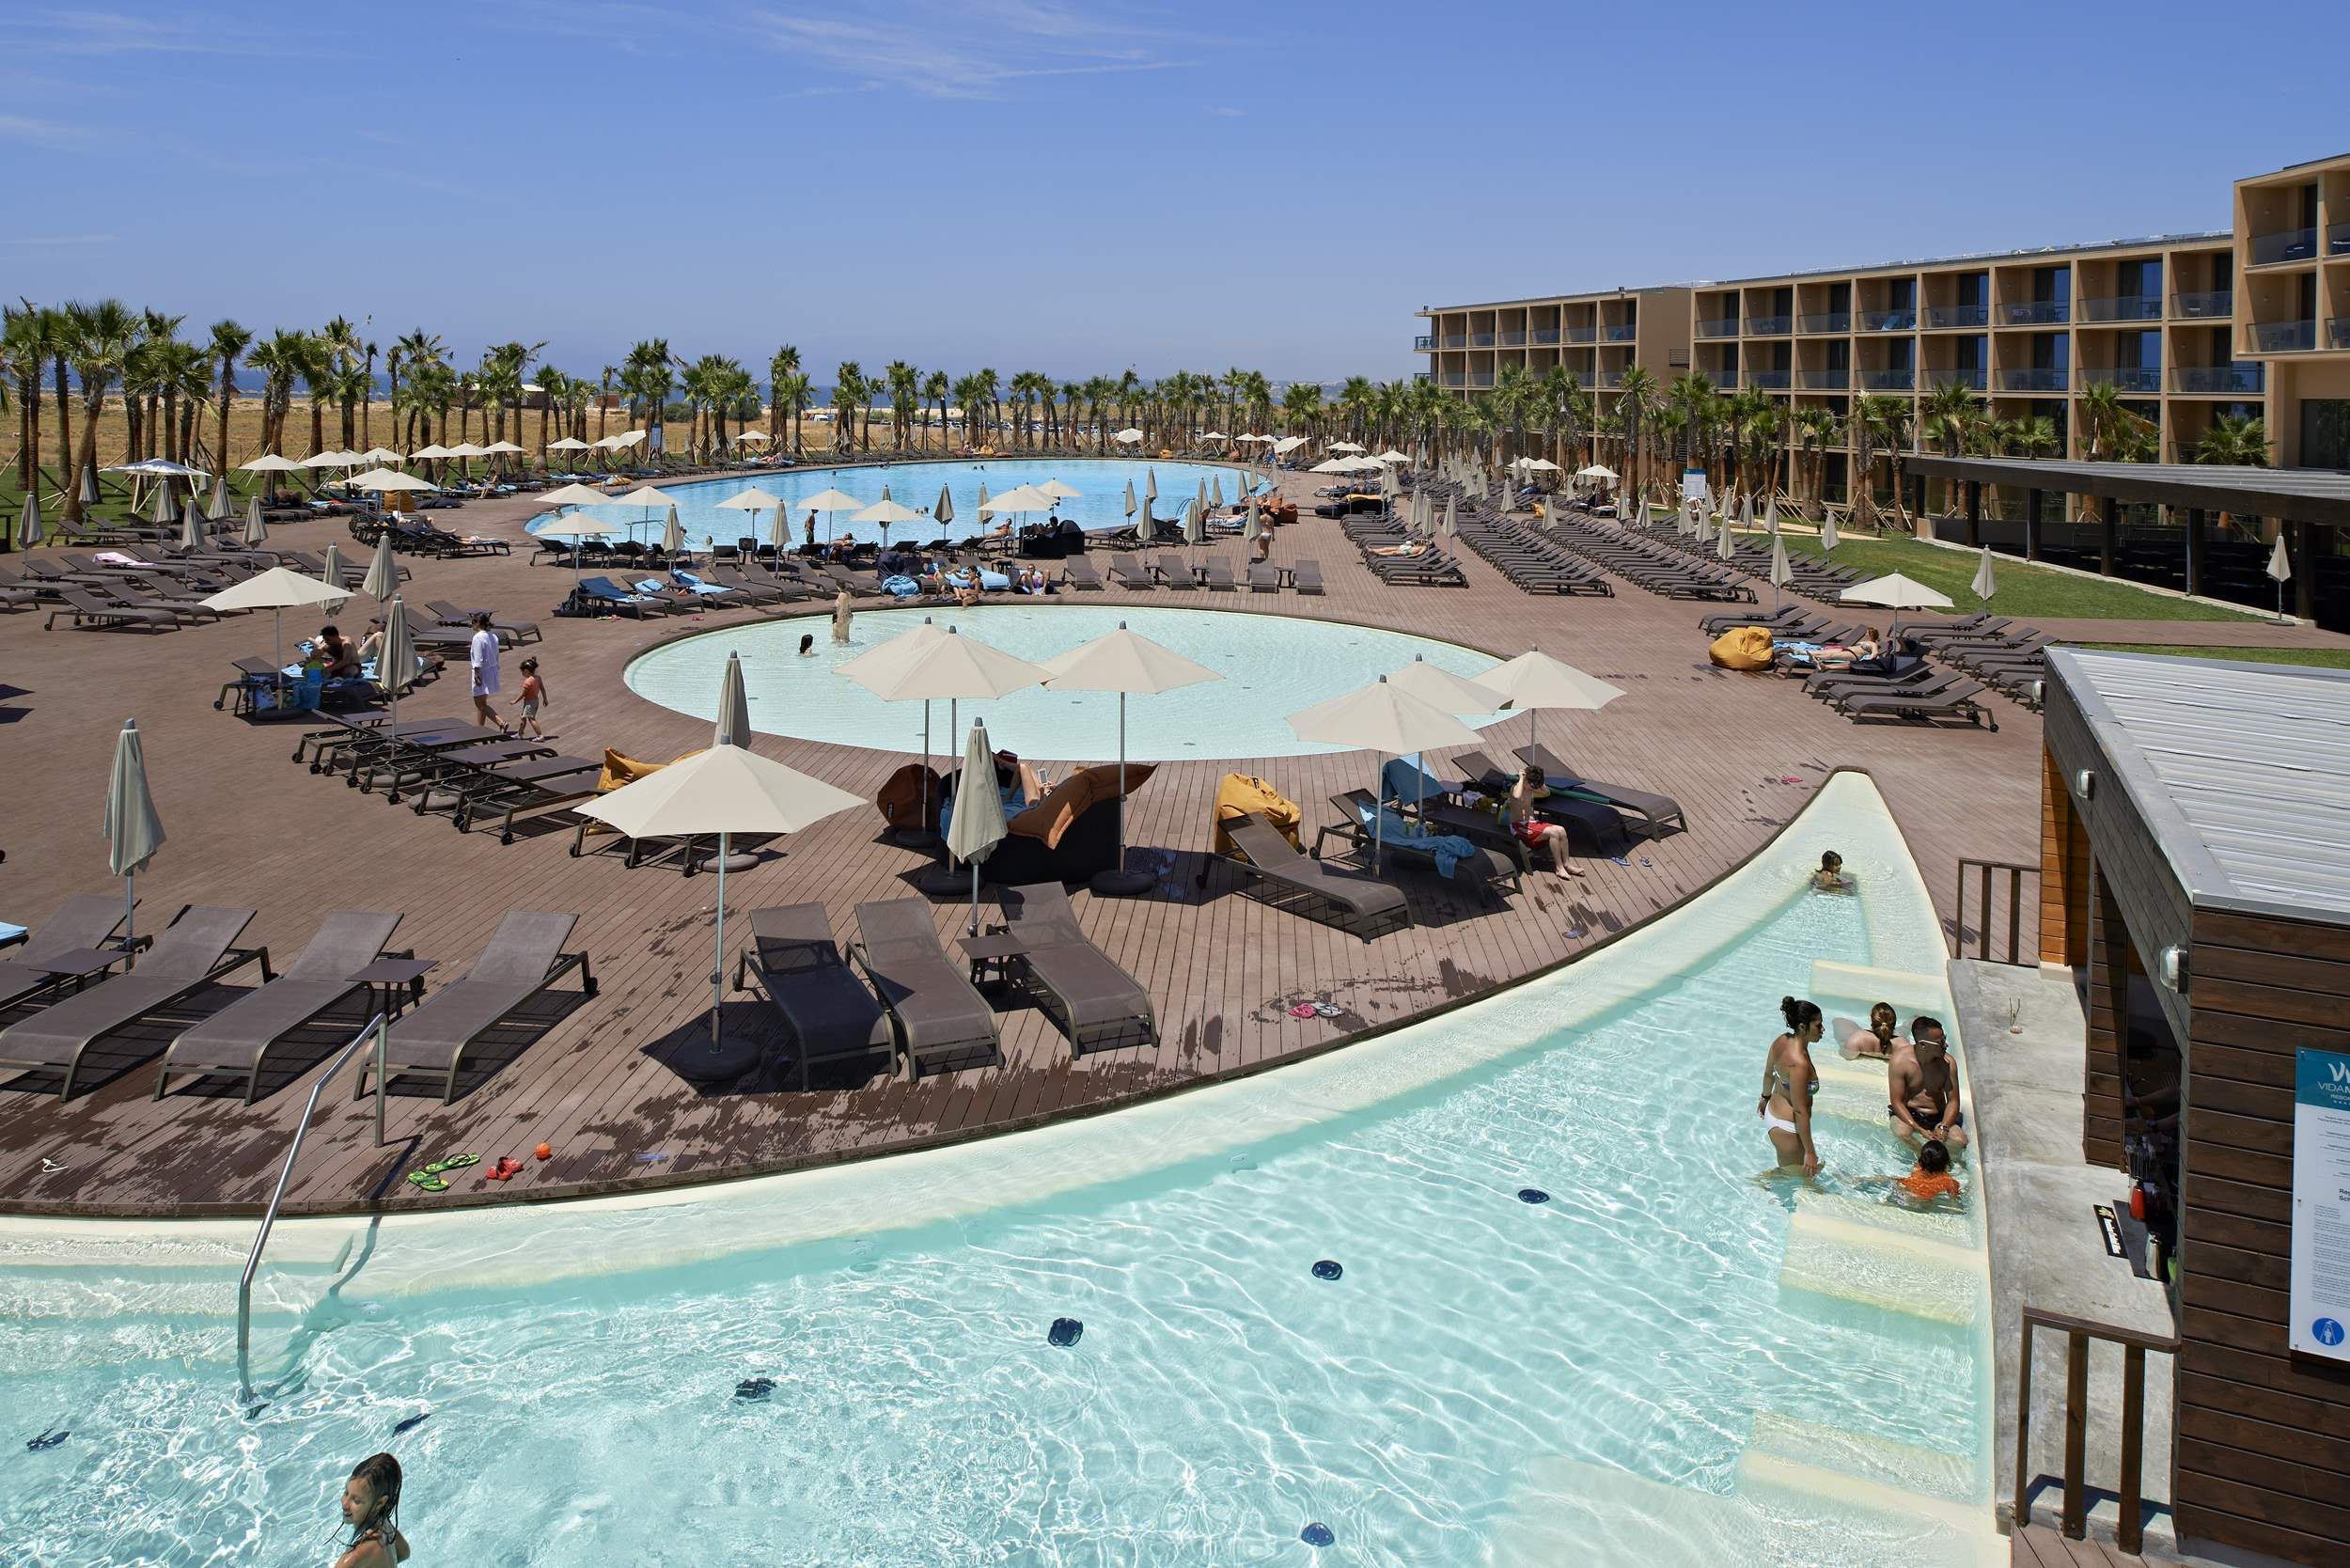 Vidamar Hotel Ocean View Room, HB, Double Room, 1 bedroom hotel in Vidamar Resort, Algarve Photo #1